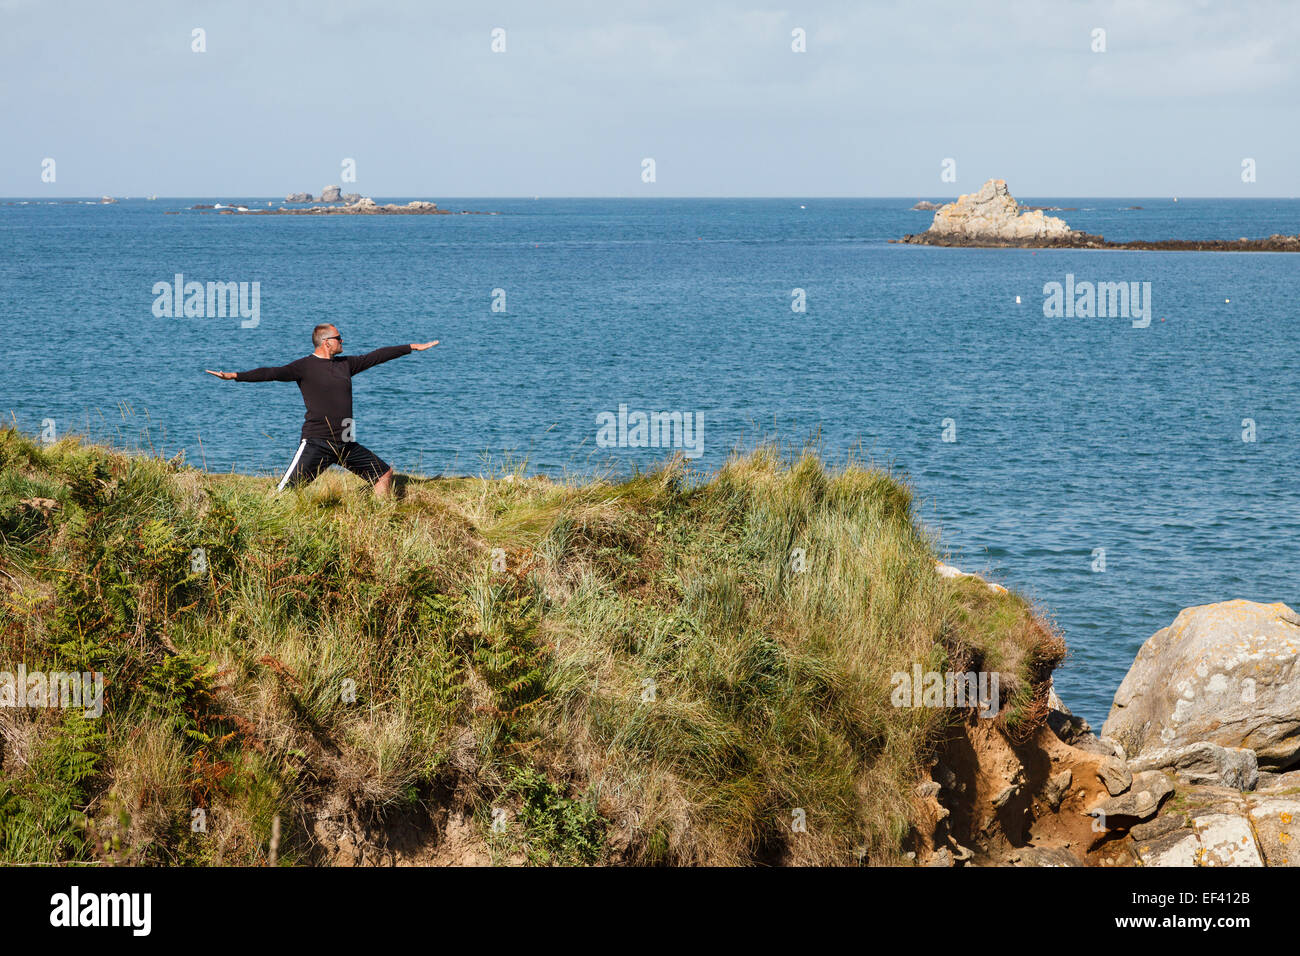 Man doing tai chi on a clifftop near Landéda, Les Abers, Finistère, Brittany, France. - Stock Image